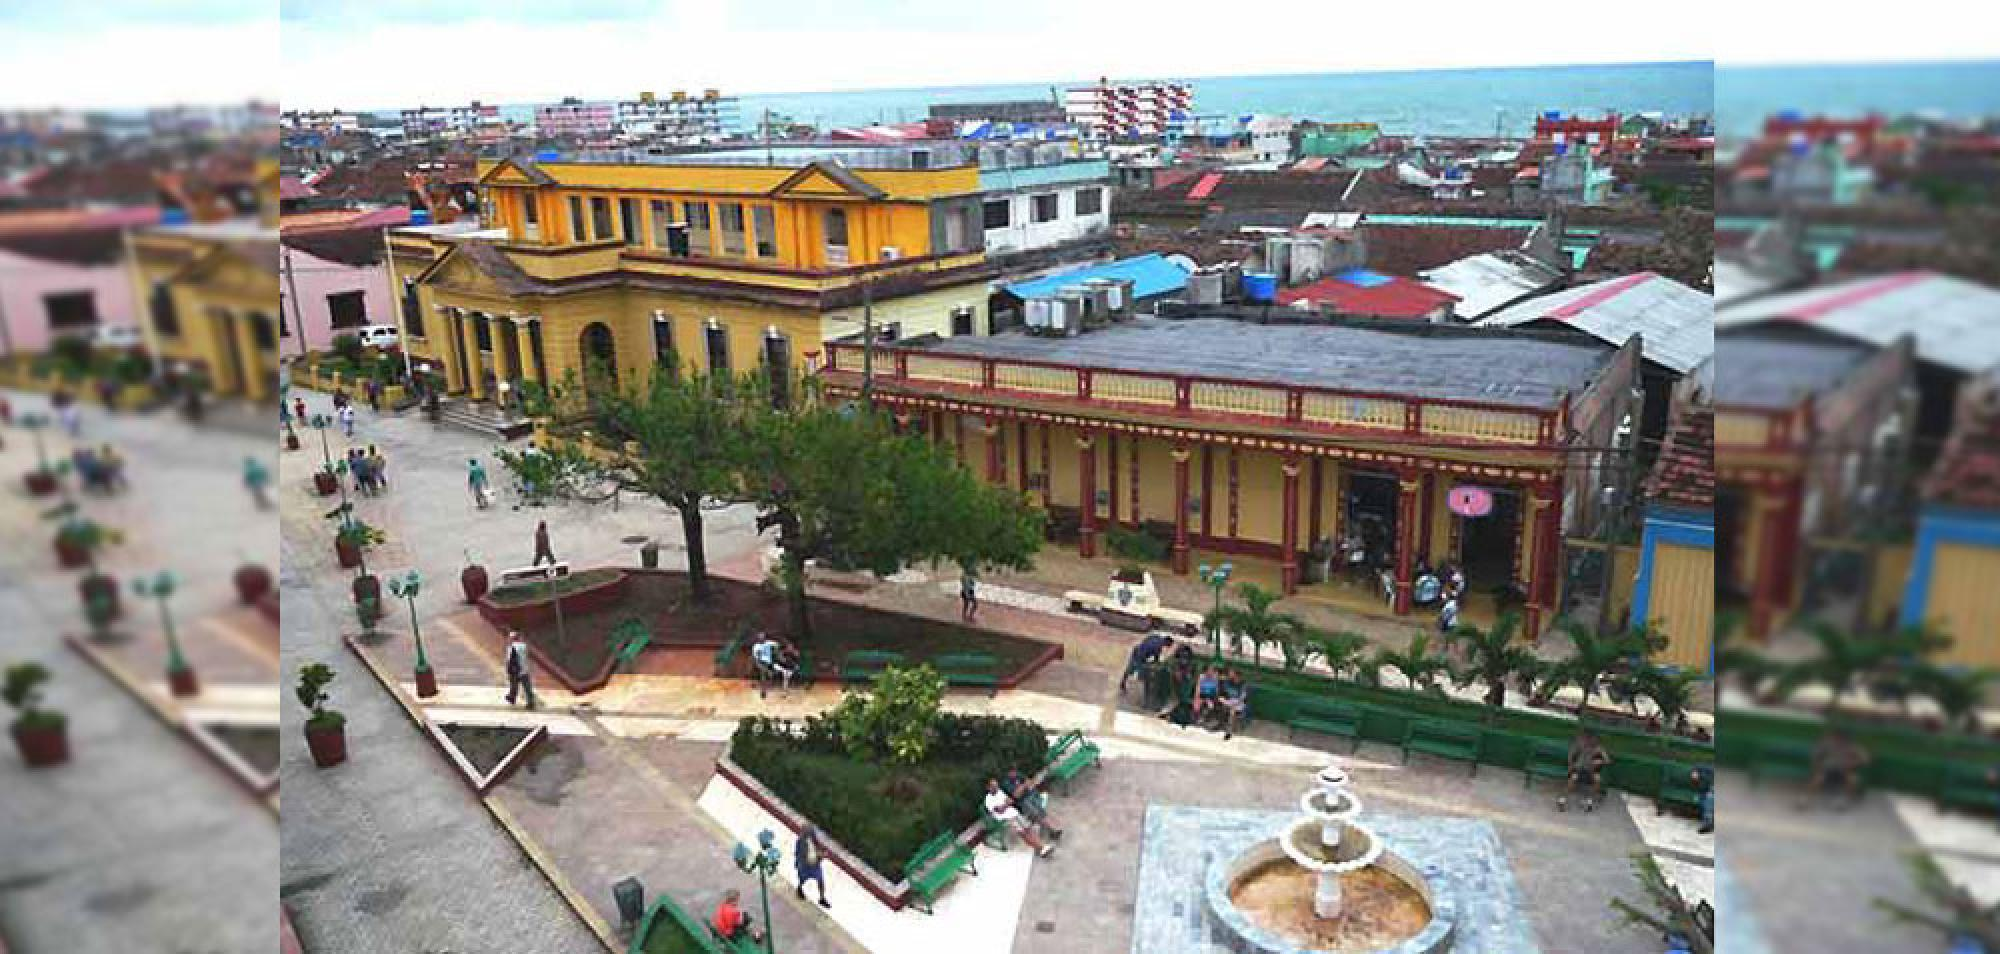 Tourists Highlight Beauty of Baracoa, Cuban Eastern City